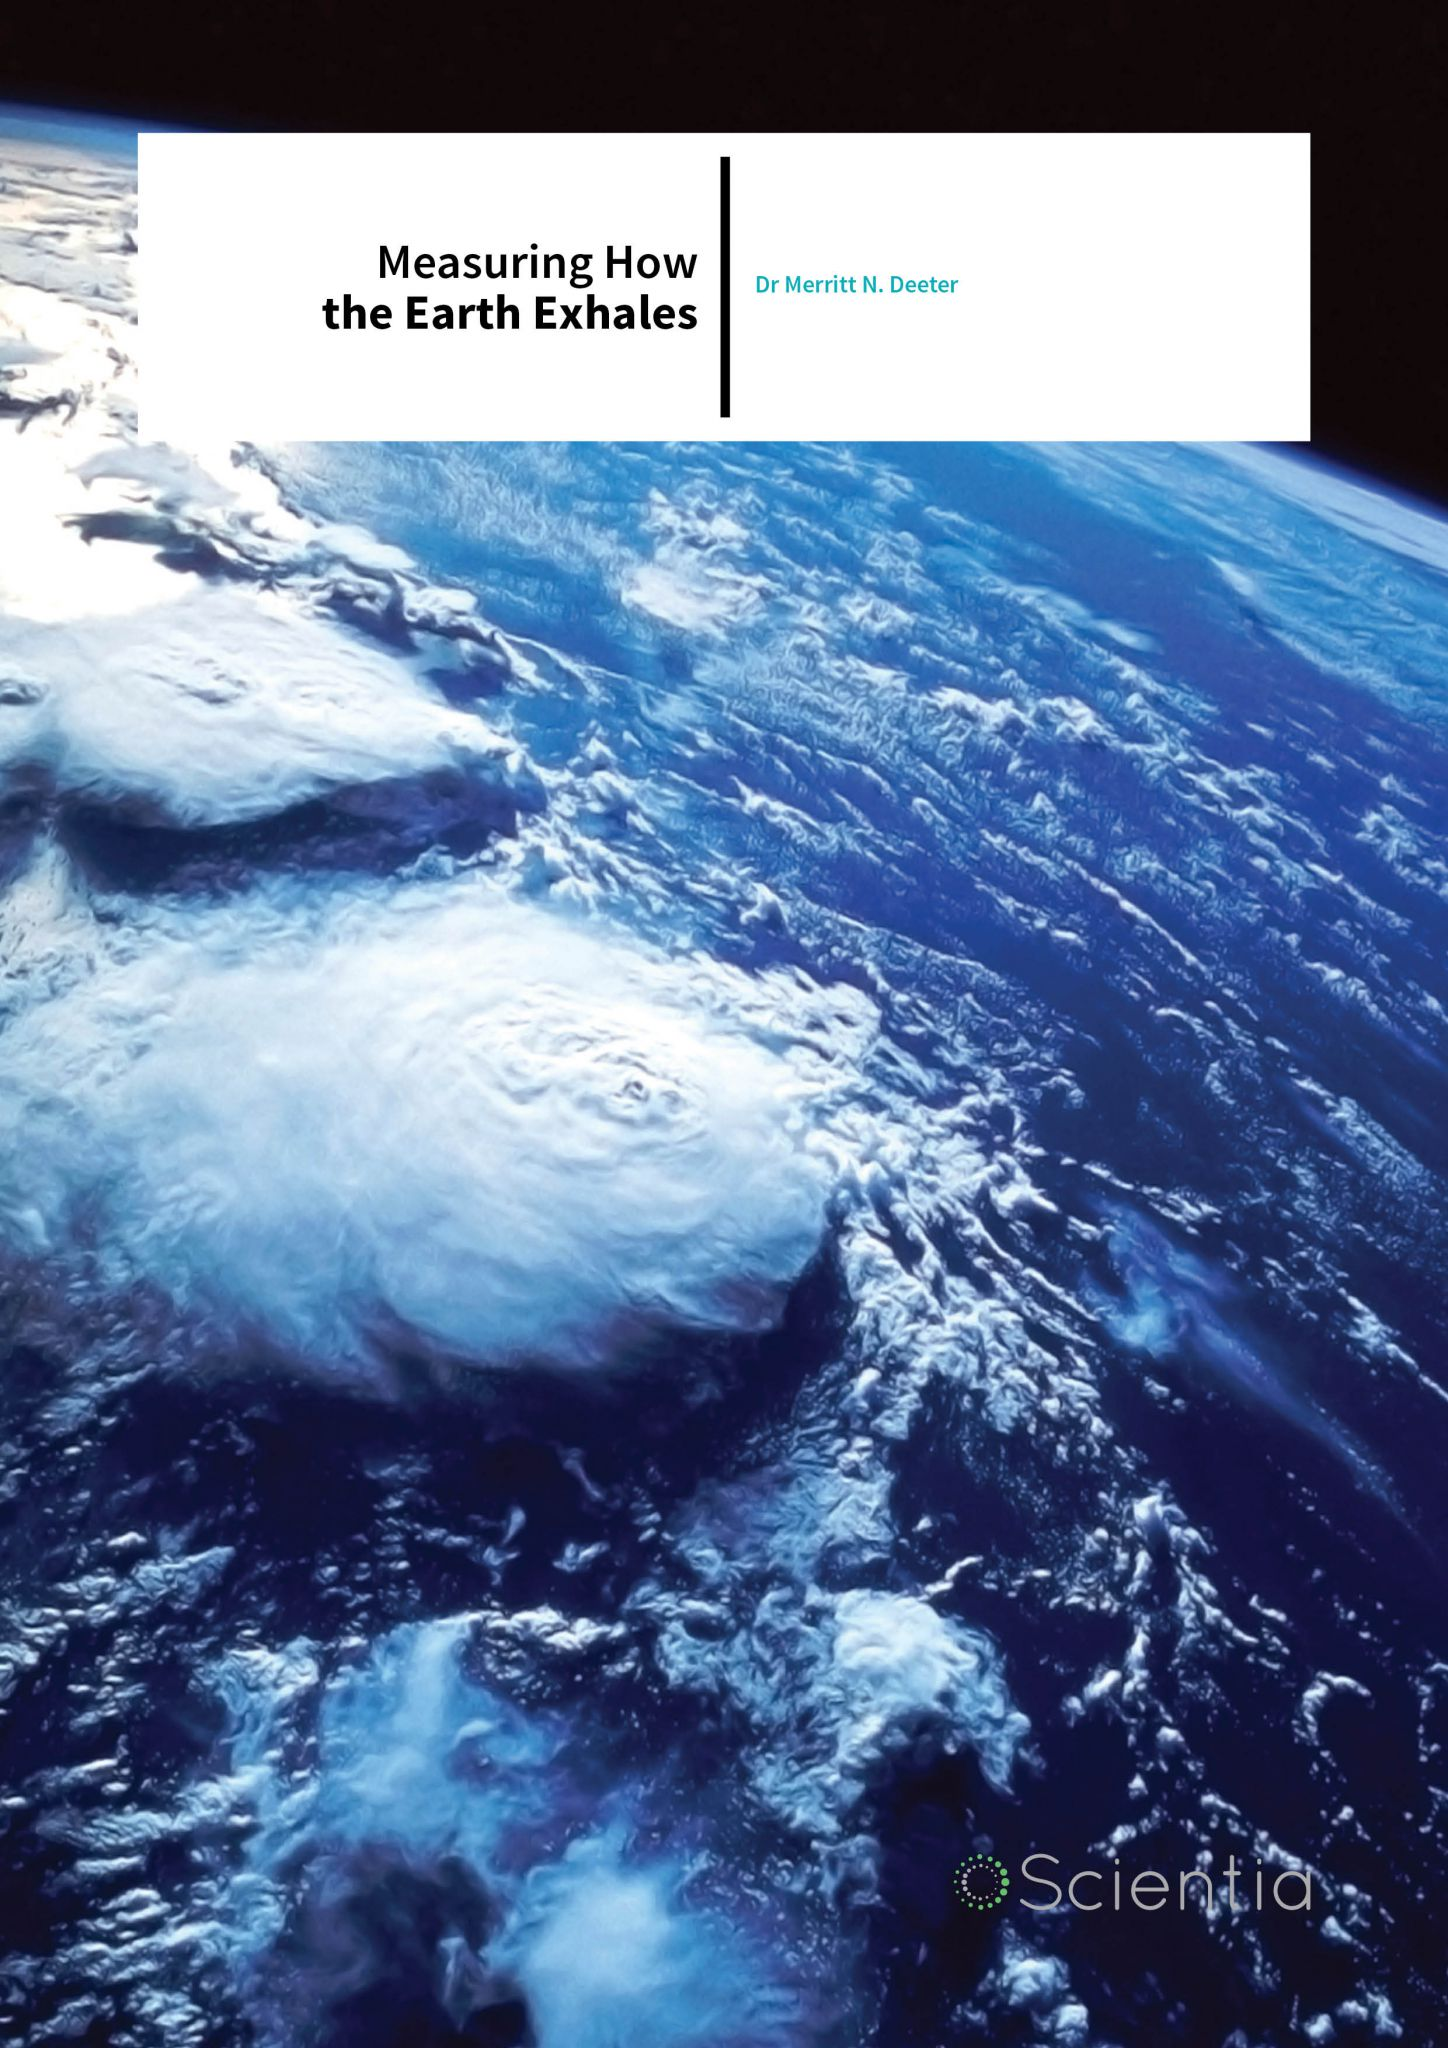 Dr Merritt N. Deeter – Measuring How The Earth Exhales